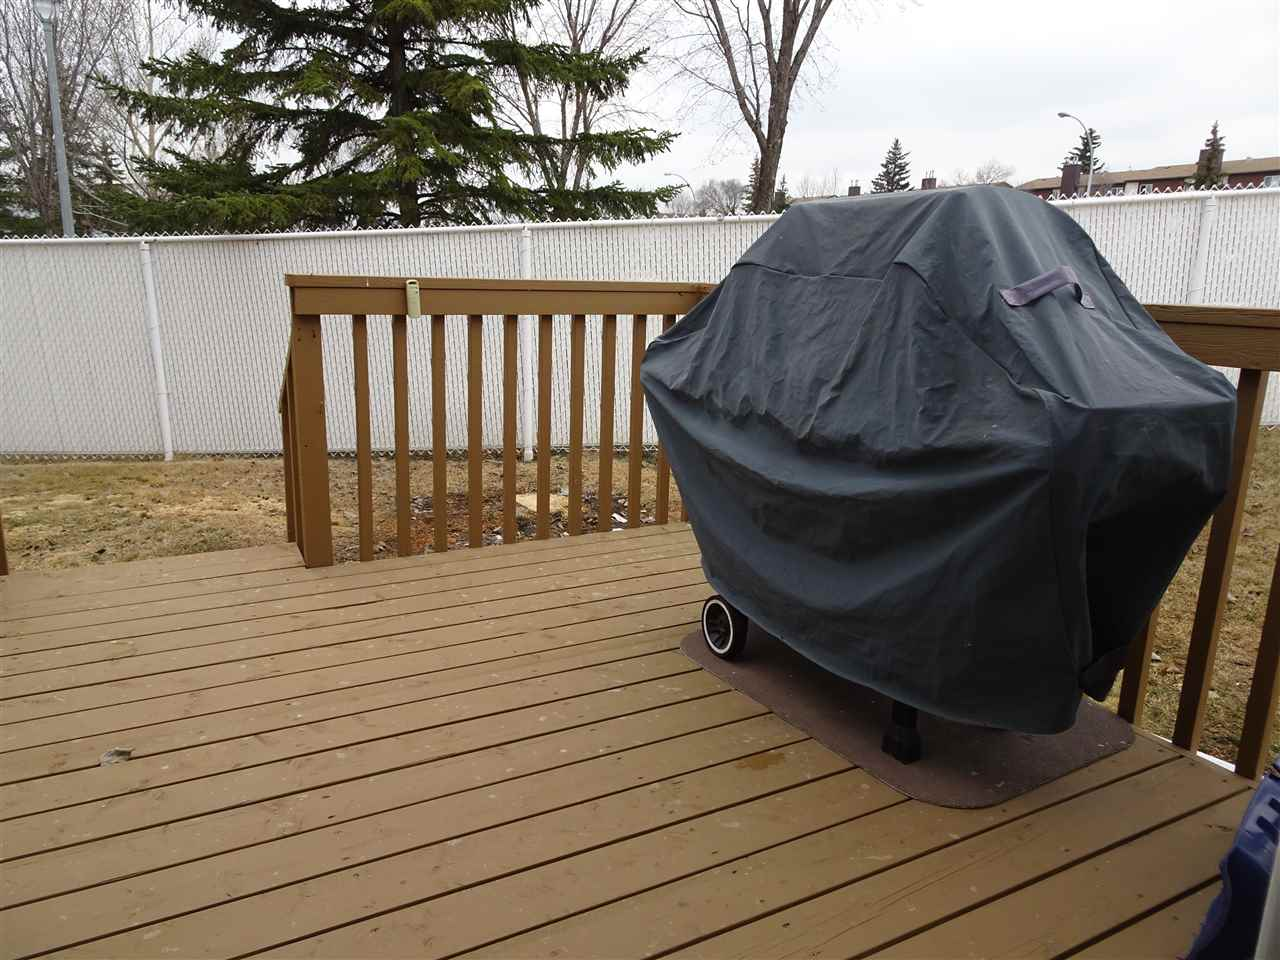 Photo 14: 8146 27 Avenue in Edmonton: Zone 29 House Half Duplex for sale : MLS® # E4059201